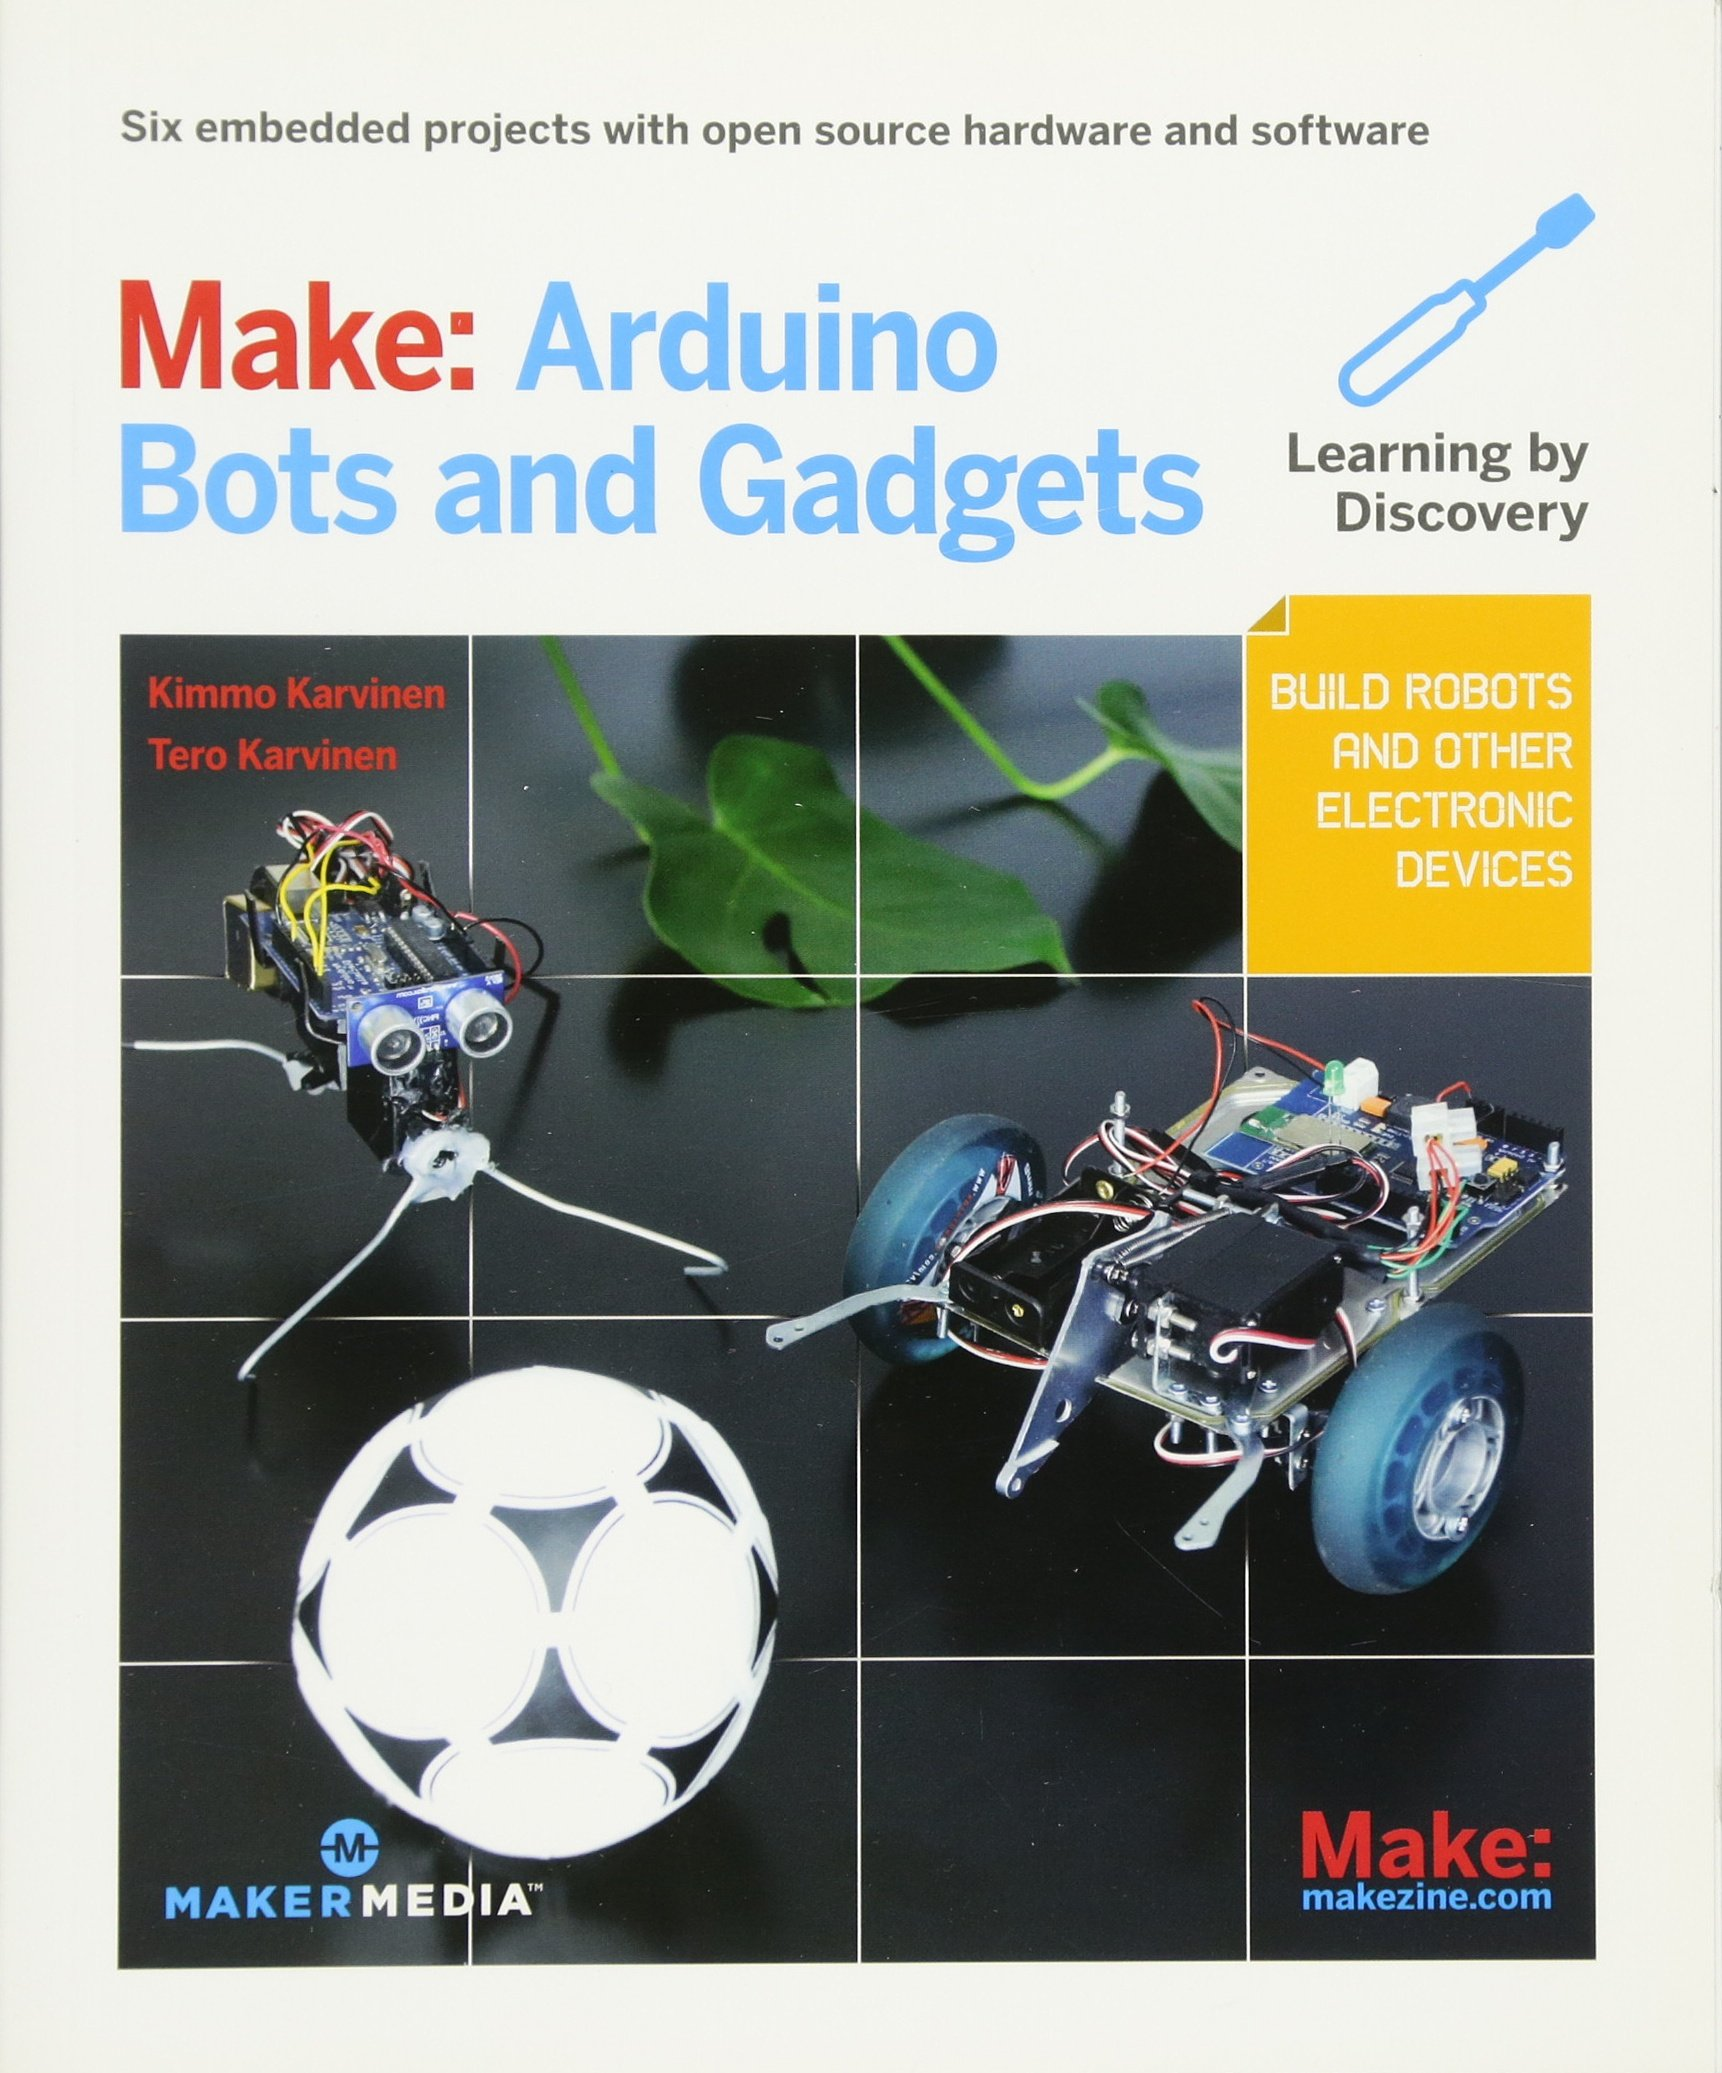 Image OfMake: Arduino Bots And Gadgets: Six Embedded Projects With Open Source Hardware And Software (Make: Technology On Your Time)